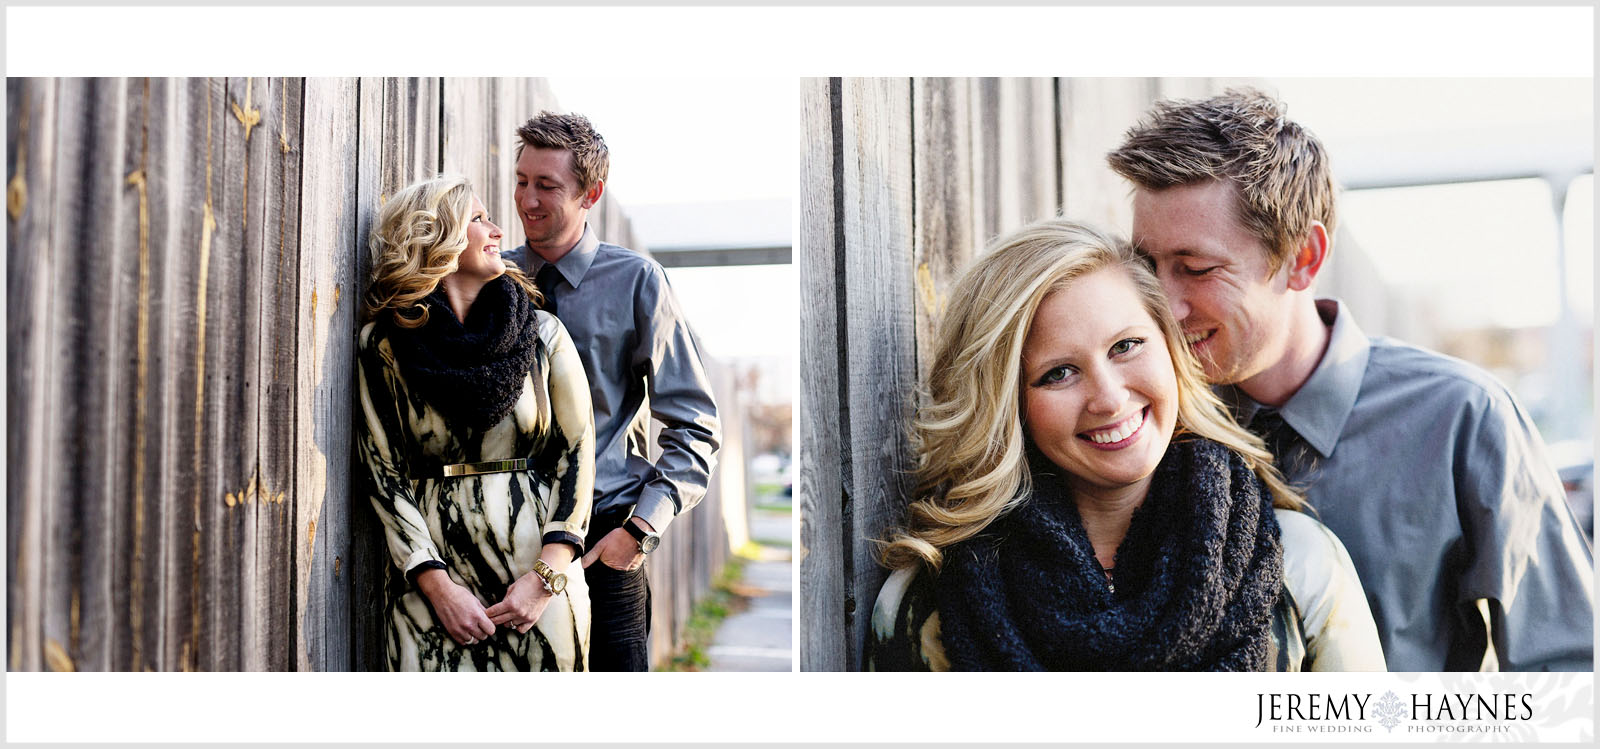 01-romantic-downtown-indiana-central-canal-indianapolis-engagement-photo-ideas.jpg